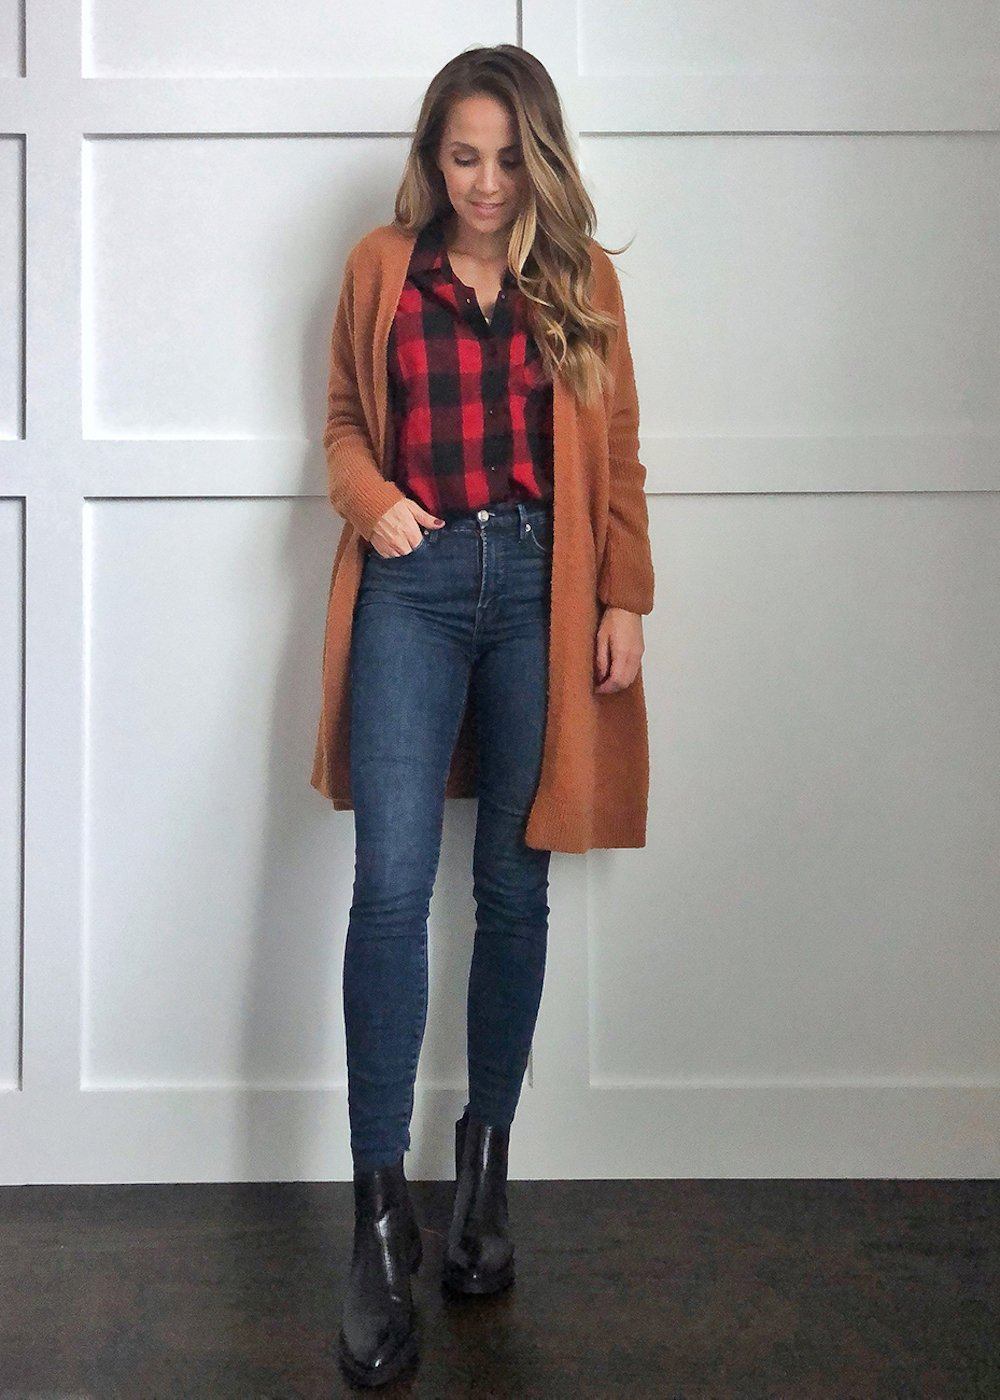 plaid shirt under a rust cardigan